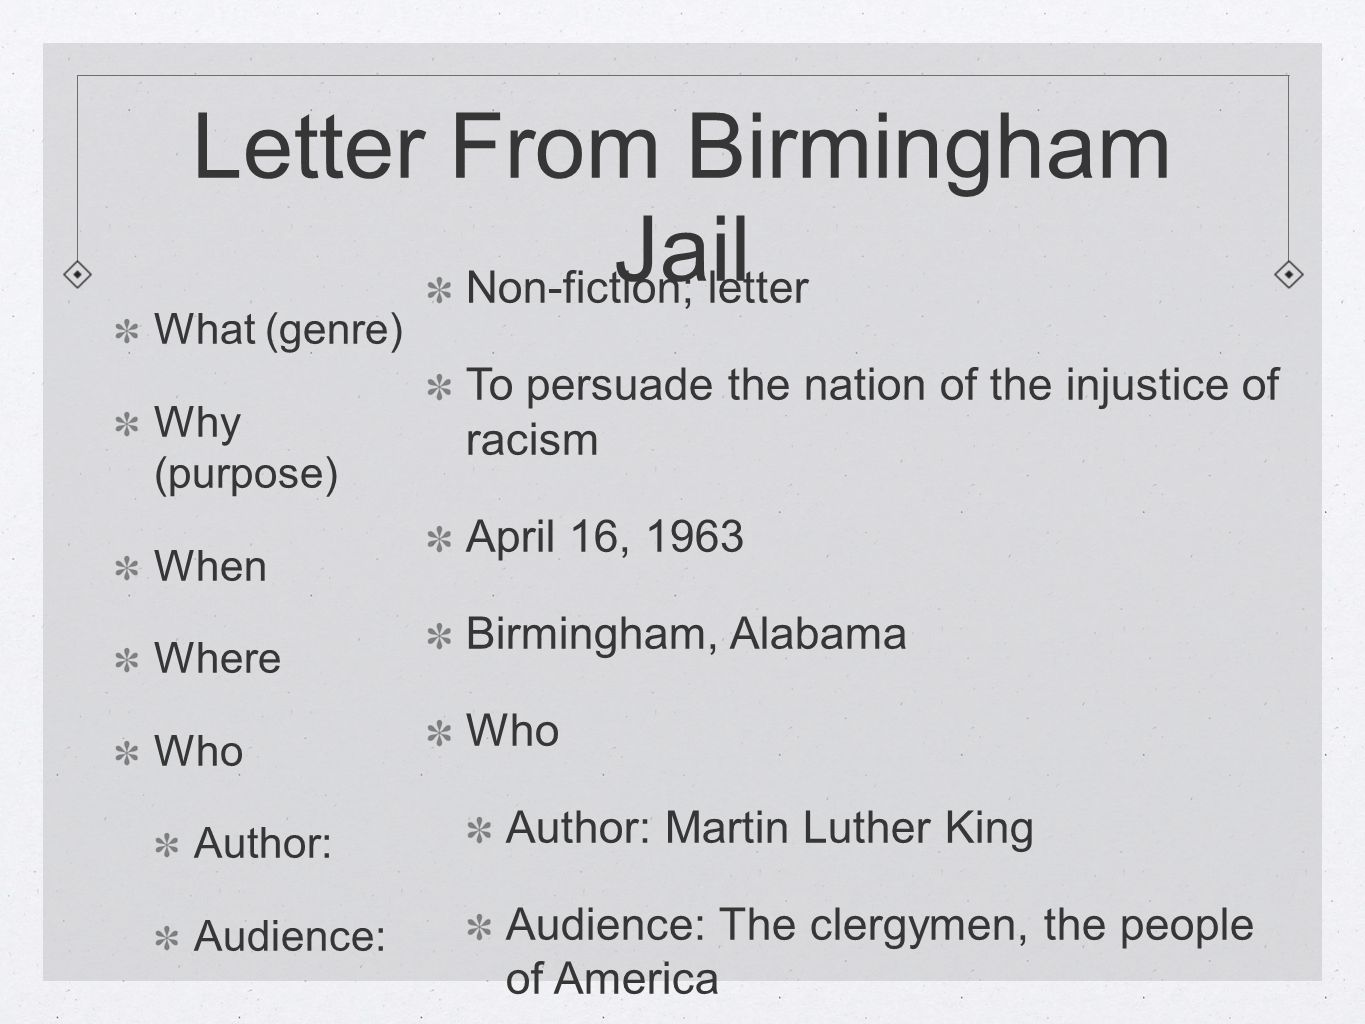 Letter From Birmingham Jail What (genre) Why (purpose) When Where Who Author: Audience: Non-fiction; letter To persuade the nation of the injustice of racism April 16, 1963 Birmingham, Alabama Who Author: Martin Luther King Audience: The clergymen, the people of America